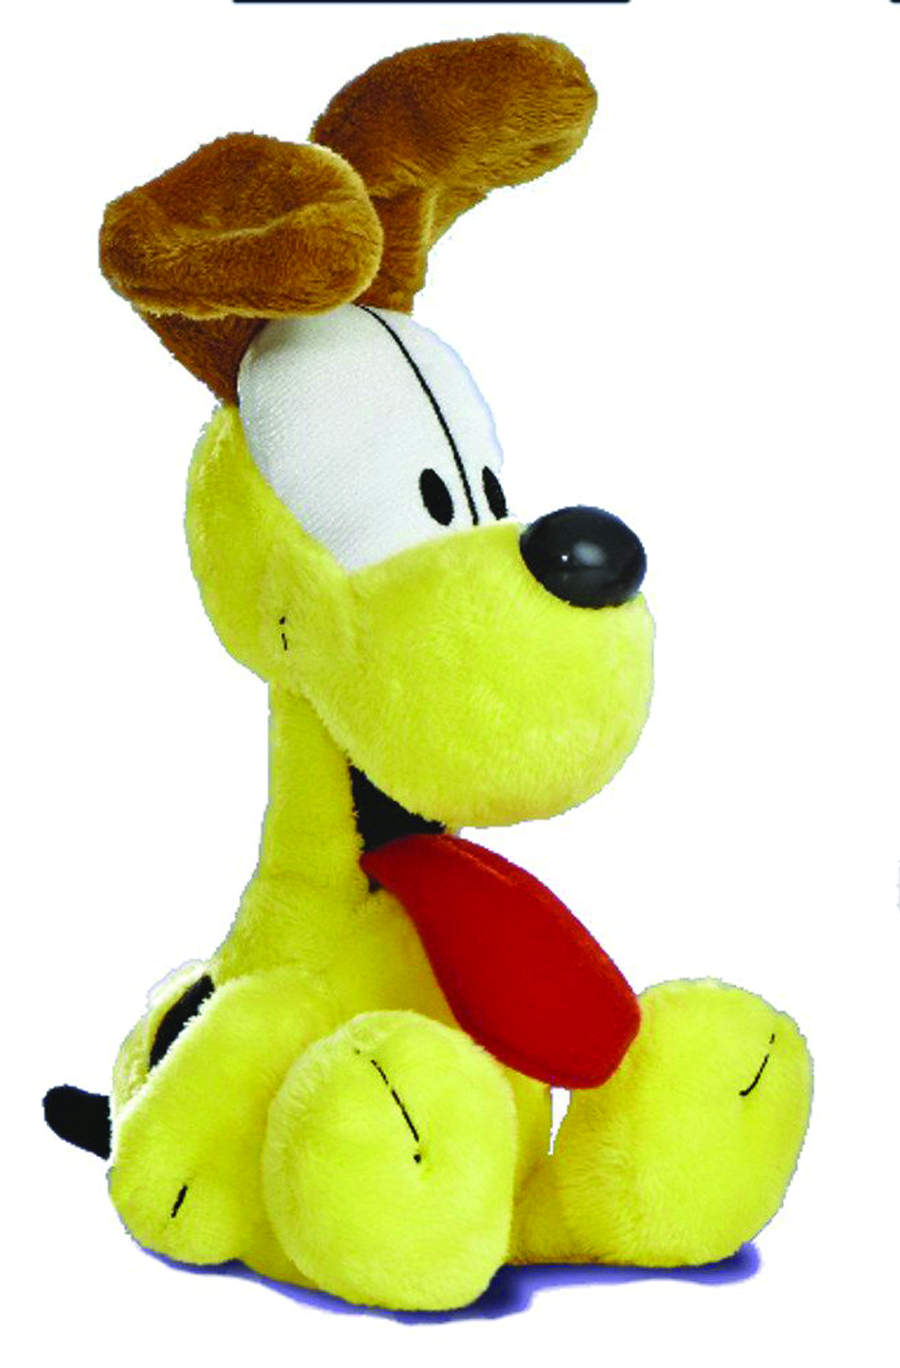 AURORA GARFIELD ODIE 7IN PLUSH